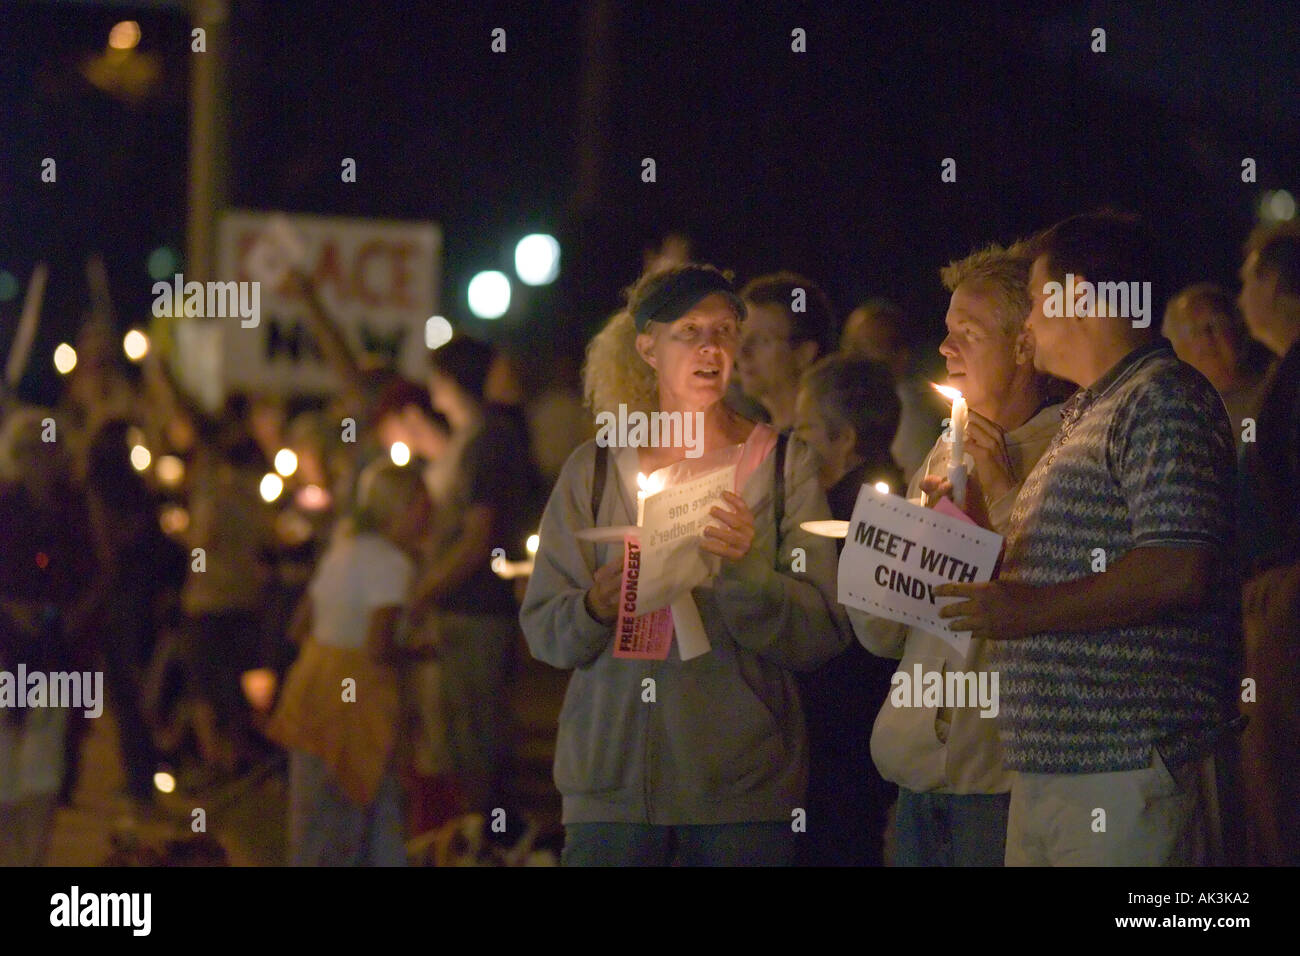 Opponents to the U S war in Iraq gather in Laguna Beach California USA on August 17 2005 Stock Photo